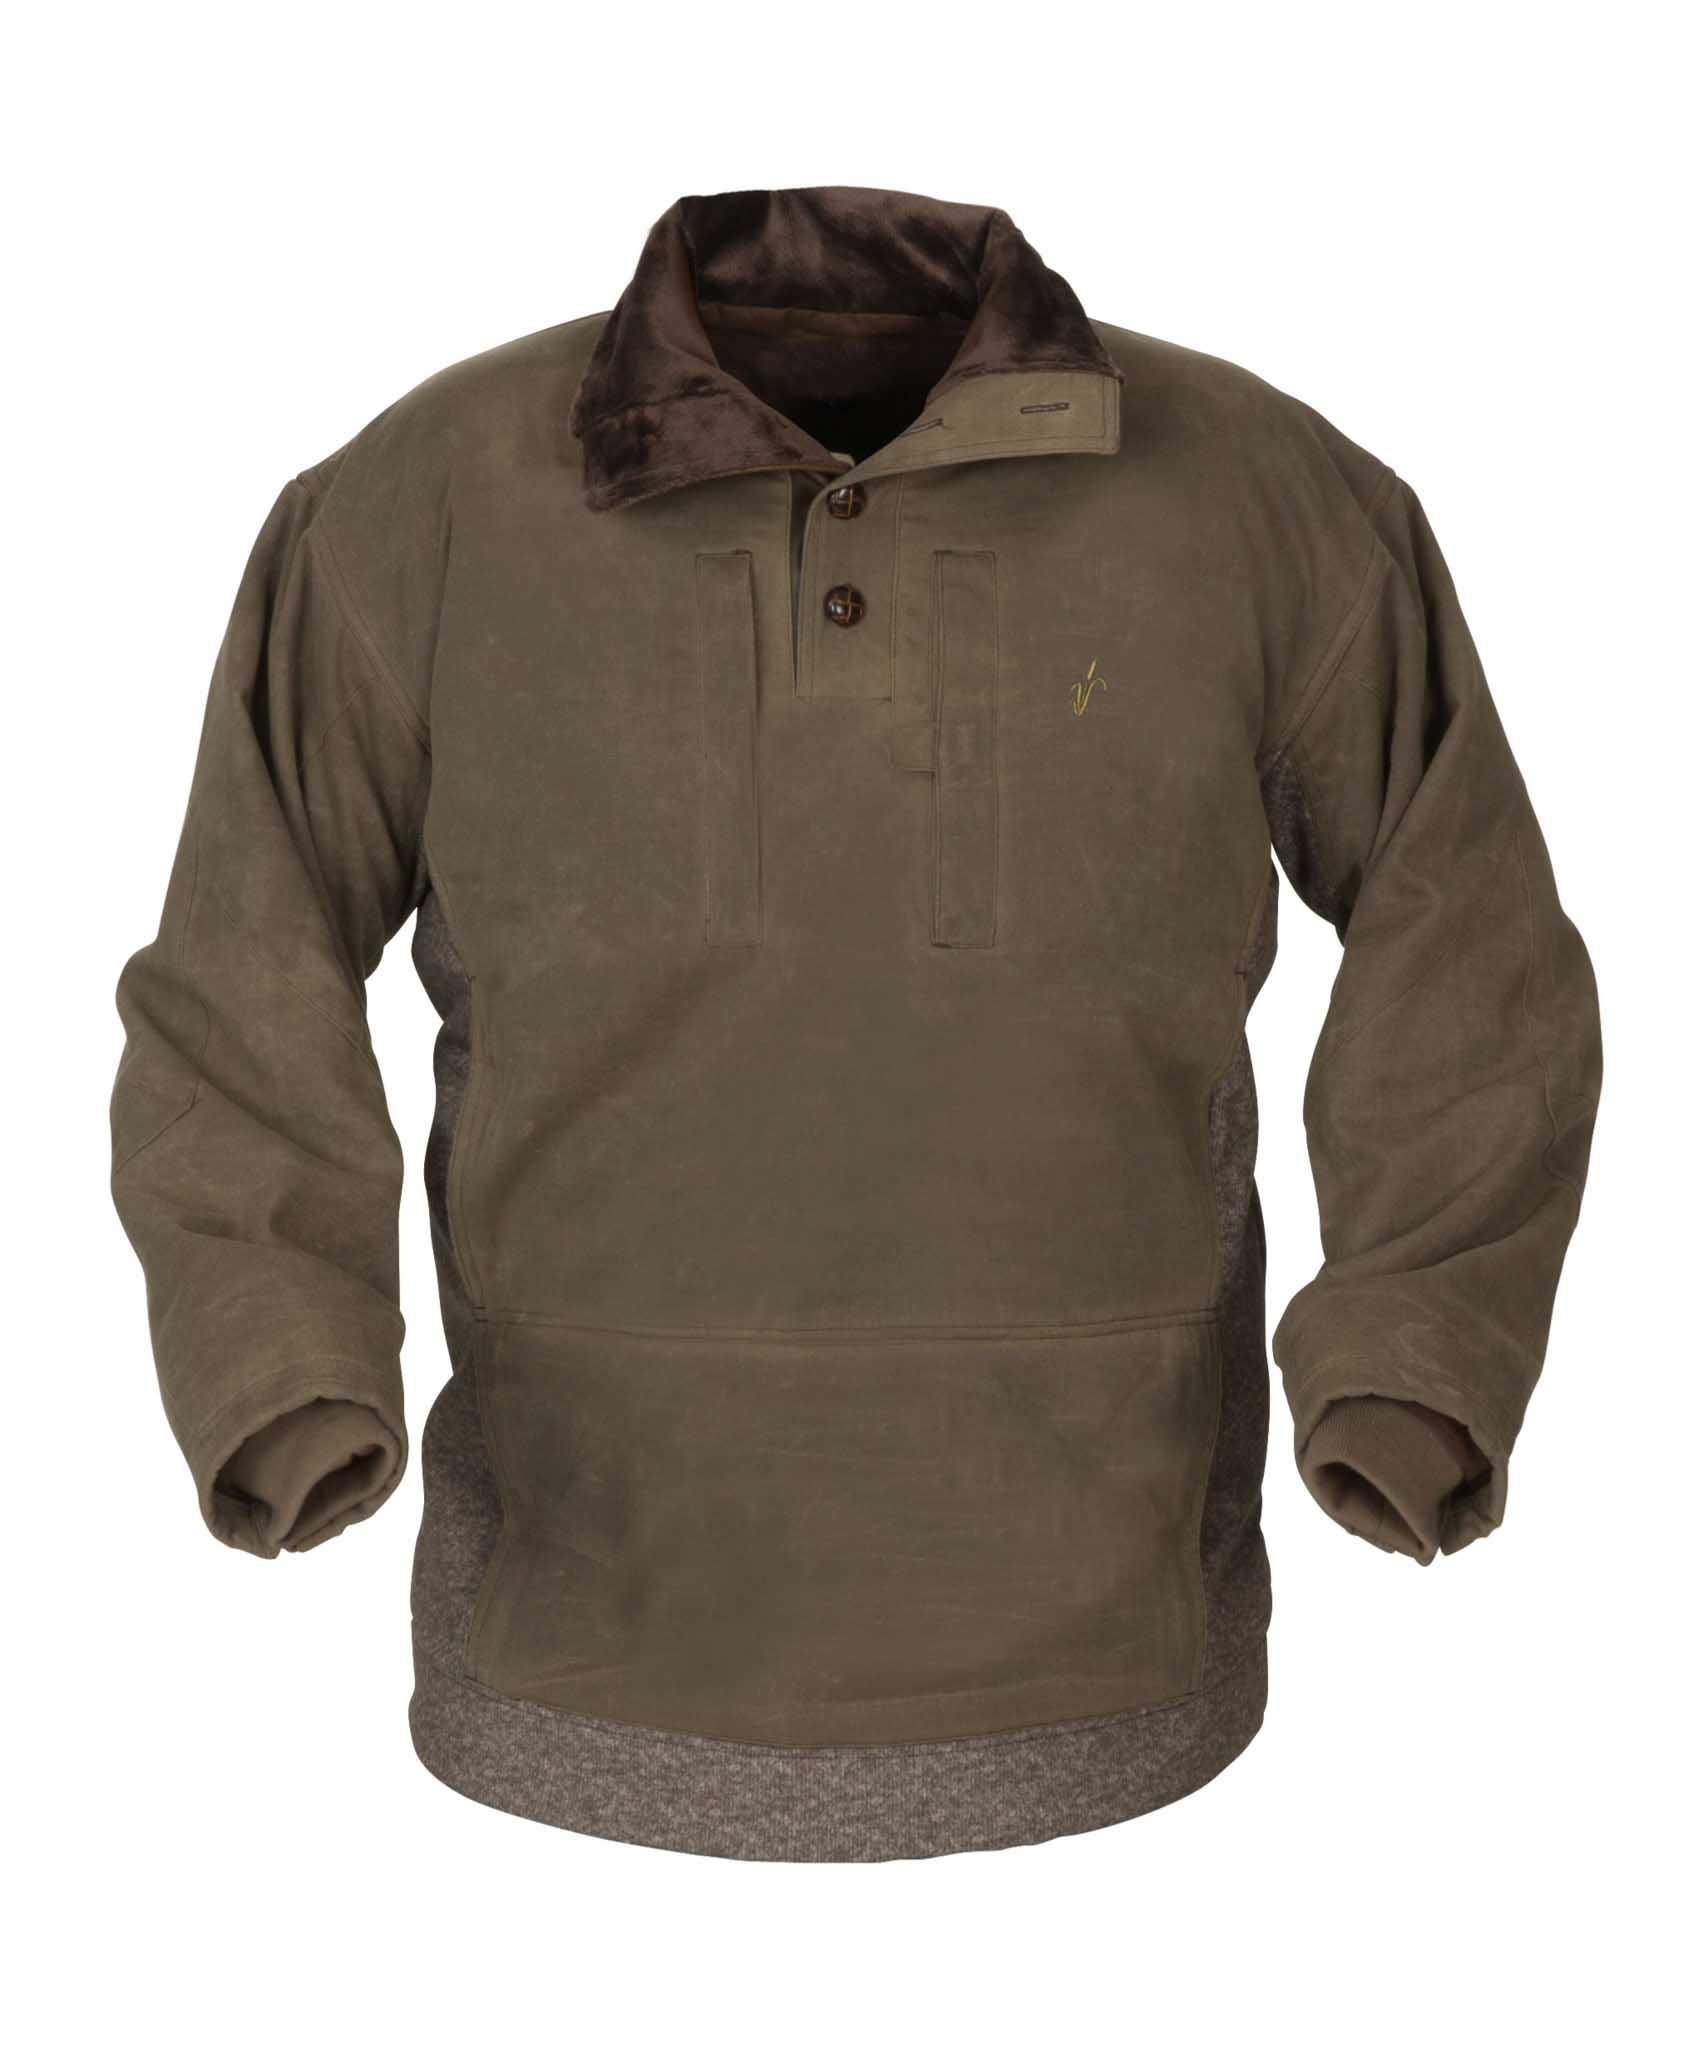 ab8c188da5e43 Avery Heritage Waterfowl Sweater, Olive Drab (A1010002-MB)